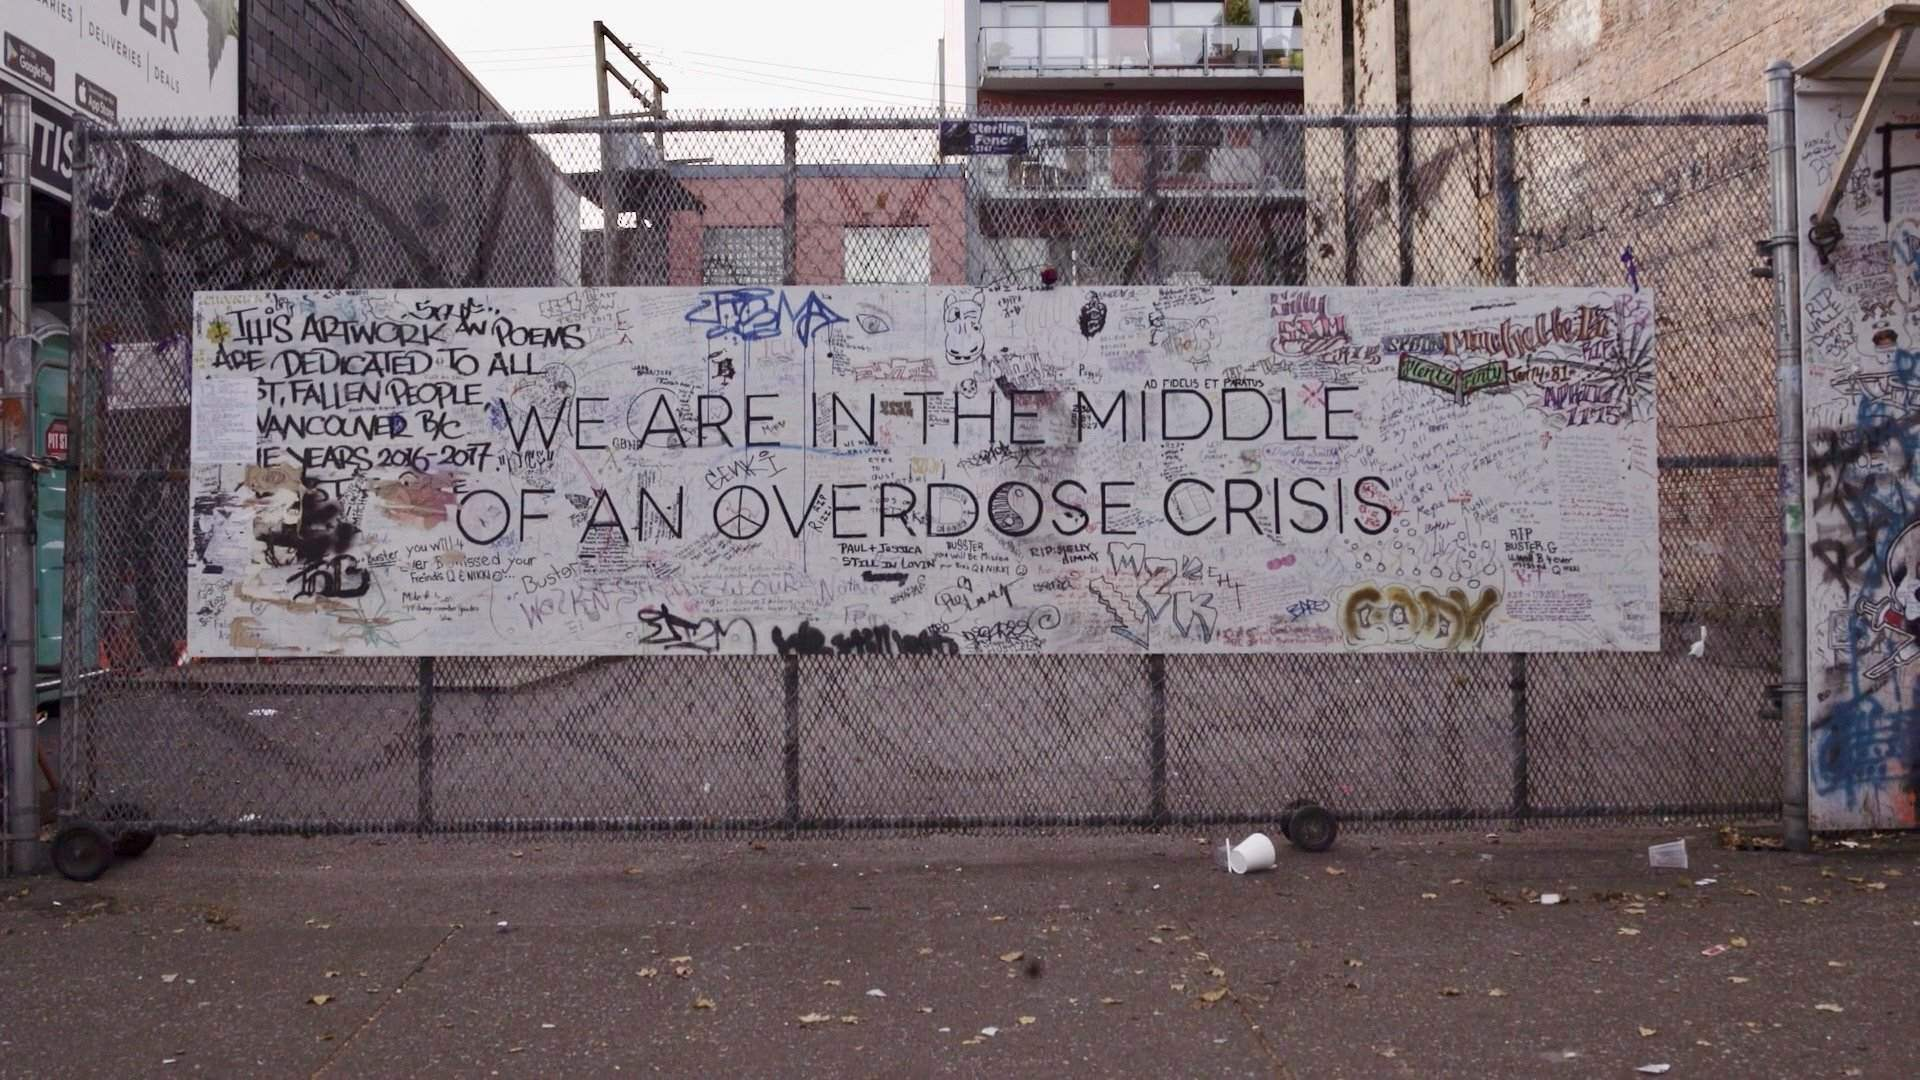 https://www.arts.ubc.ca/wp-content/uploads/sites/24/2020/04/overdose-crisis-banner-rsz.jpg